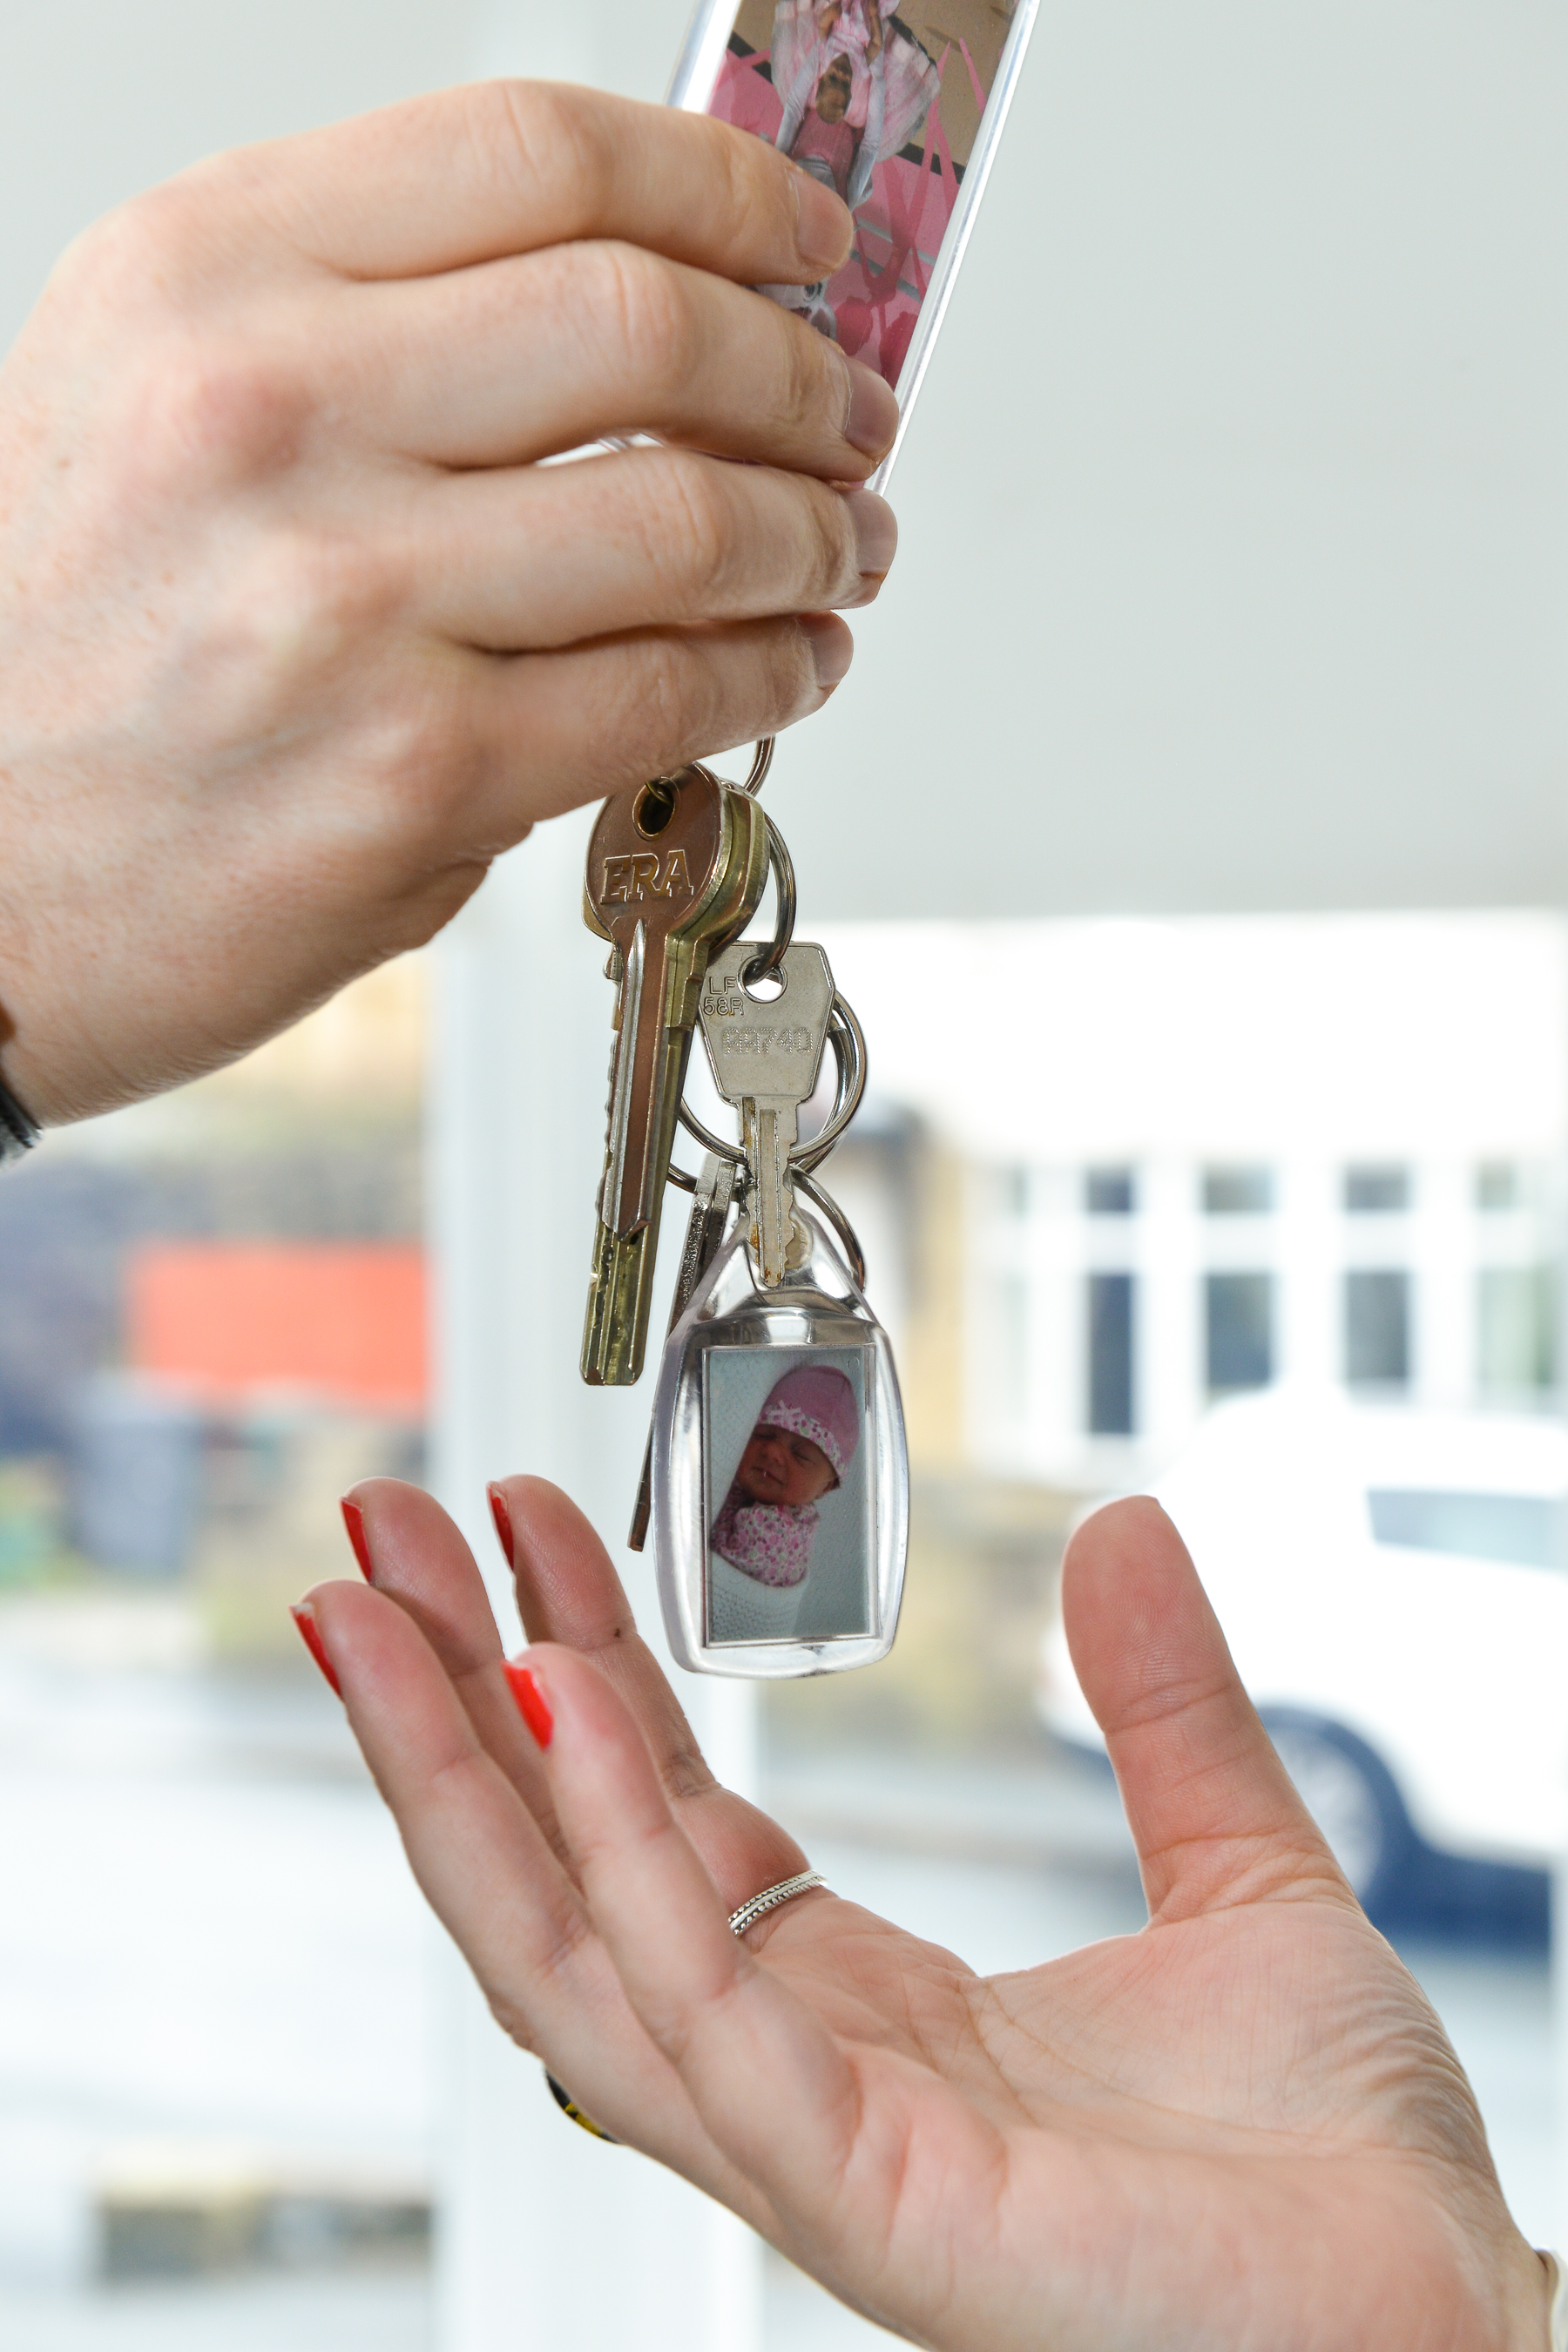 handing-over-the-keys-to-the-new-house